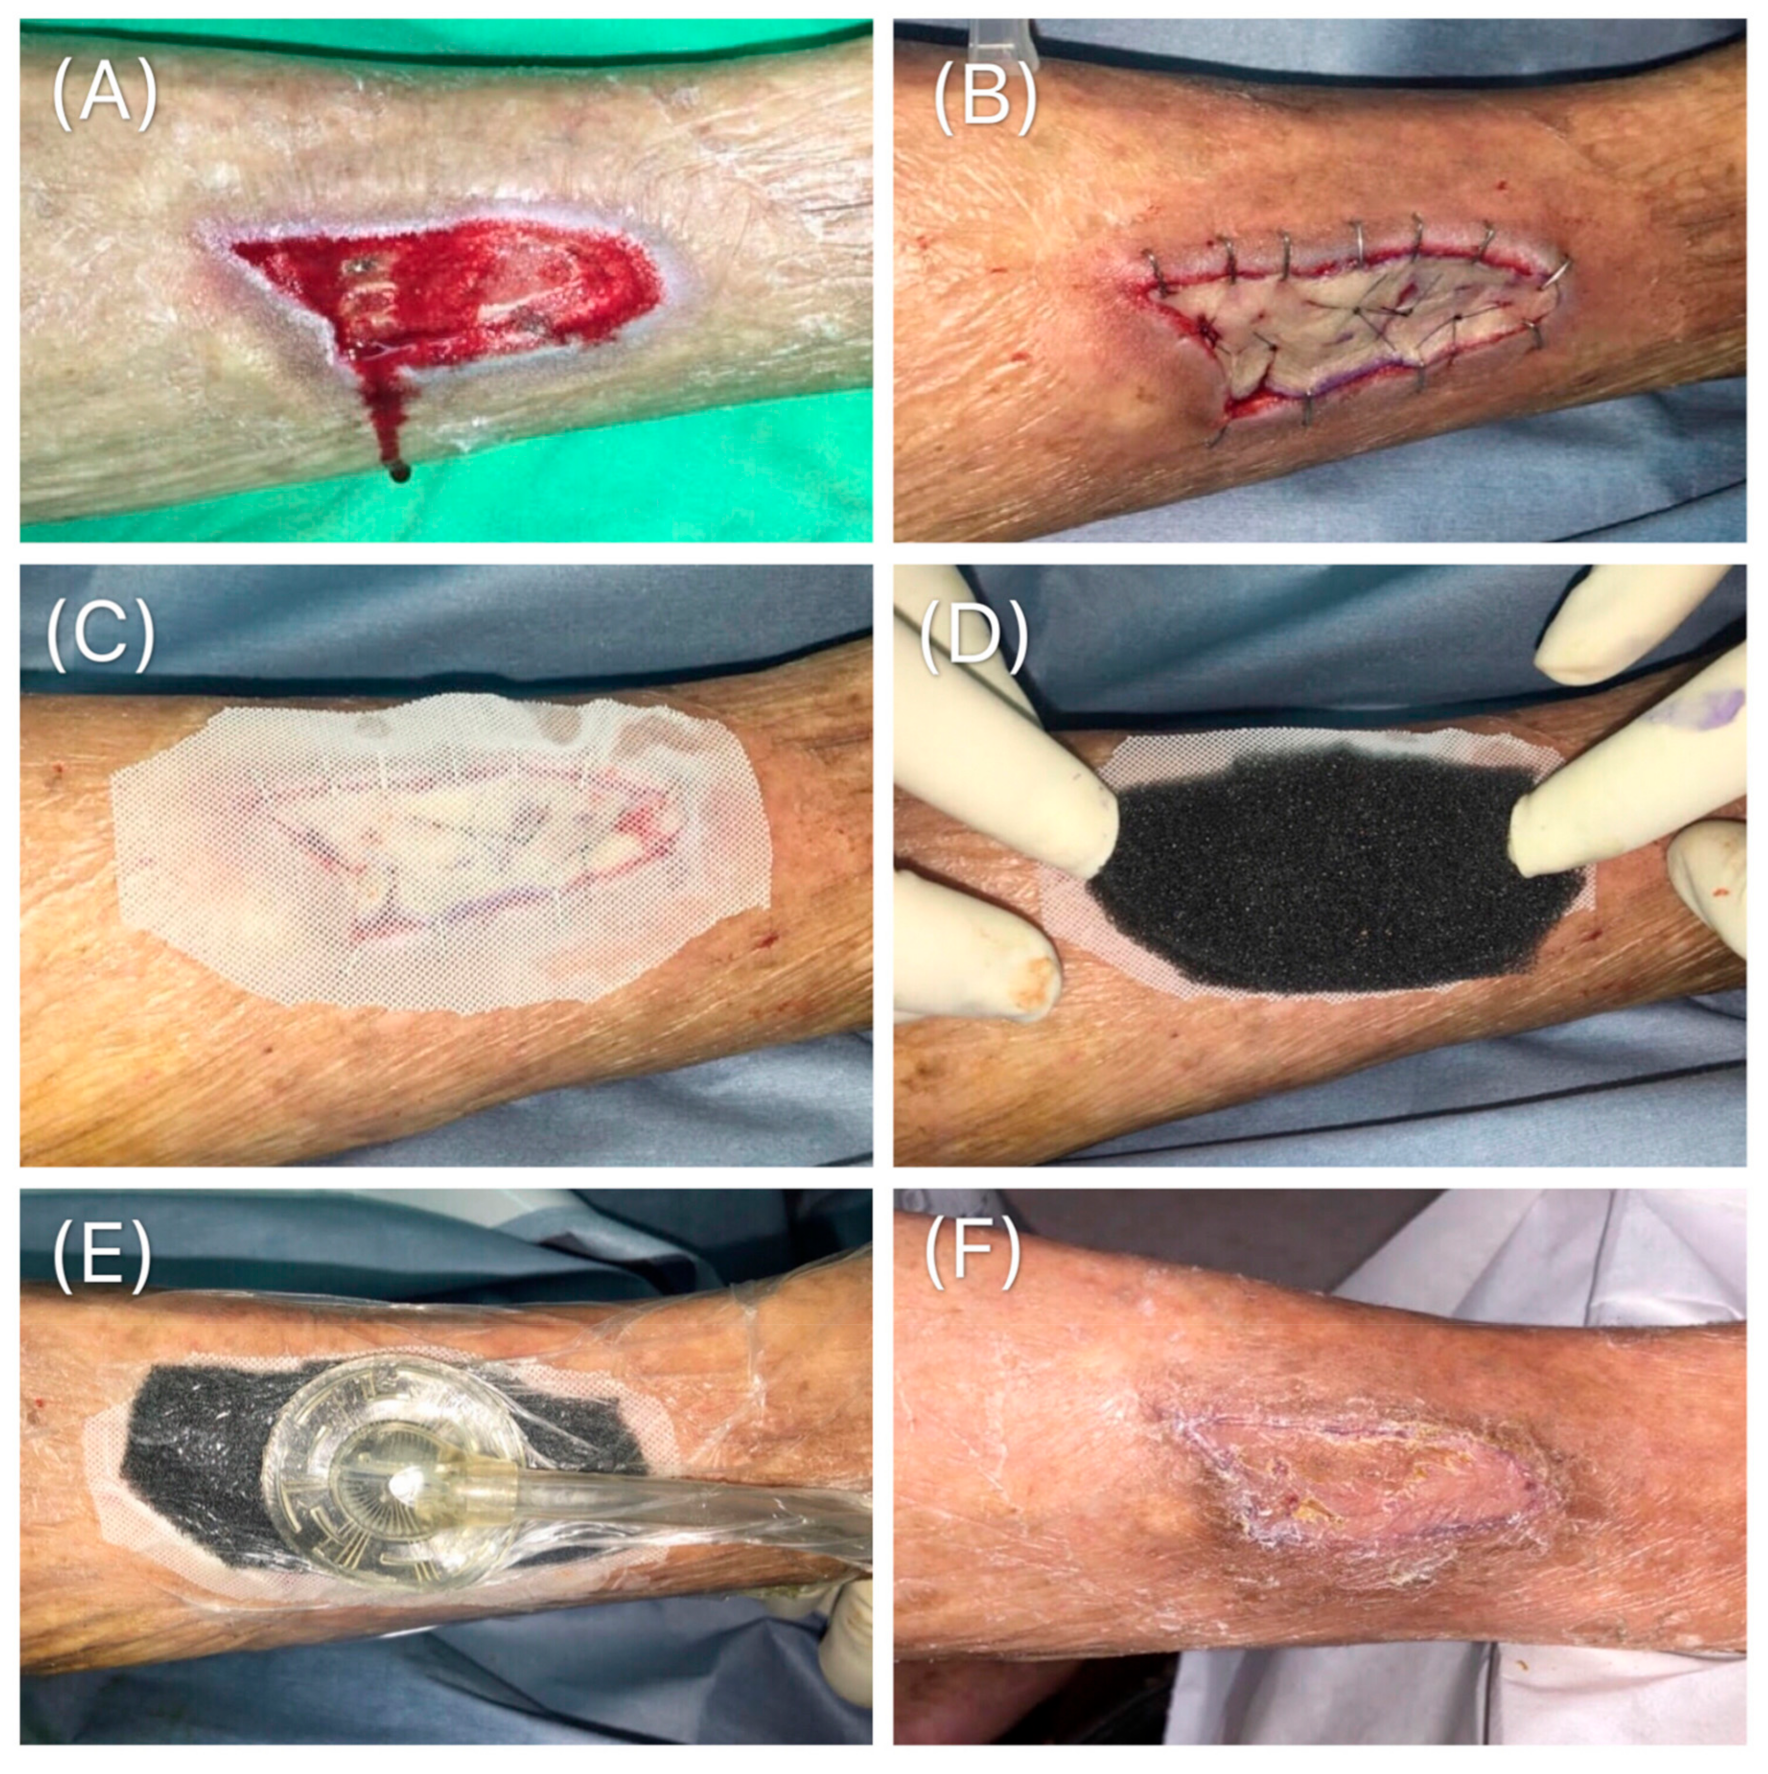 Medicina Free Full Text Retrospective Study On The Clinical Superiority Of The Vacuum Assisted Closure System With A Silicon Based Dressing Over The Conventional Tie Over Bolster Technique In Skin Graft Fixation Html